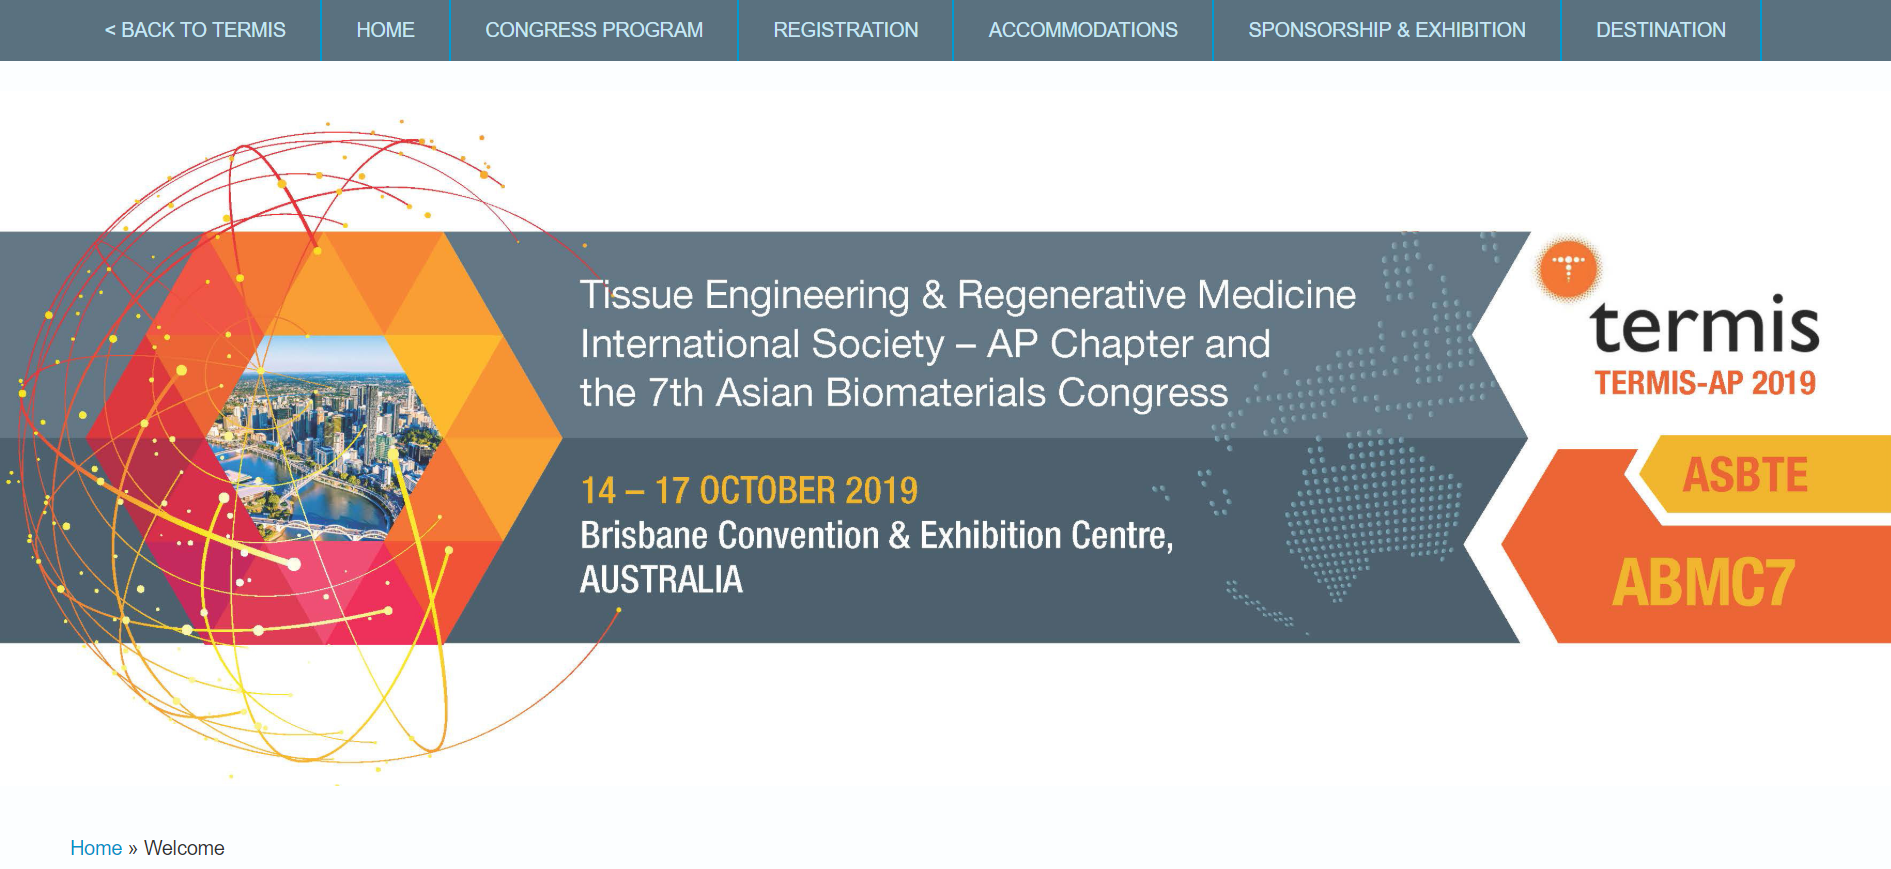 Tissue Engineering and Regenerative Medicine International Society